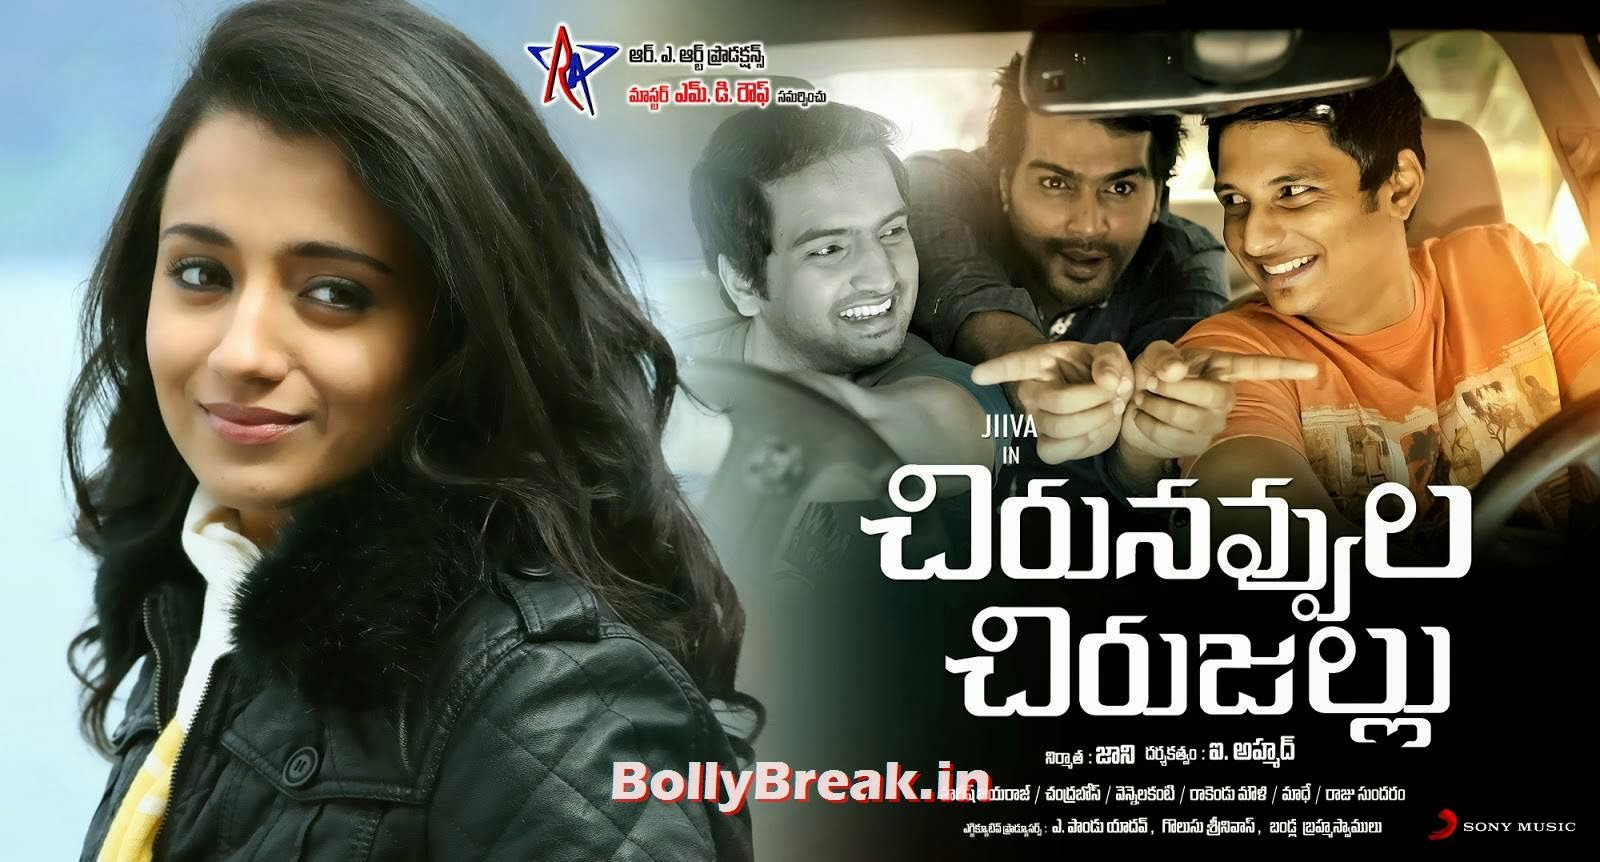 chirunavvula chirujallu movie online watch in telugu : cinema